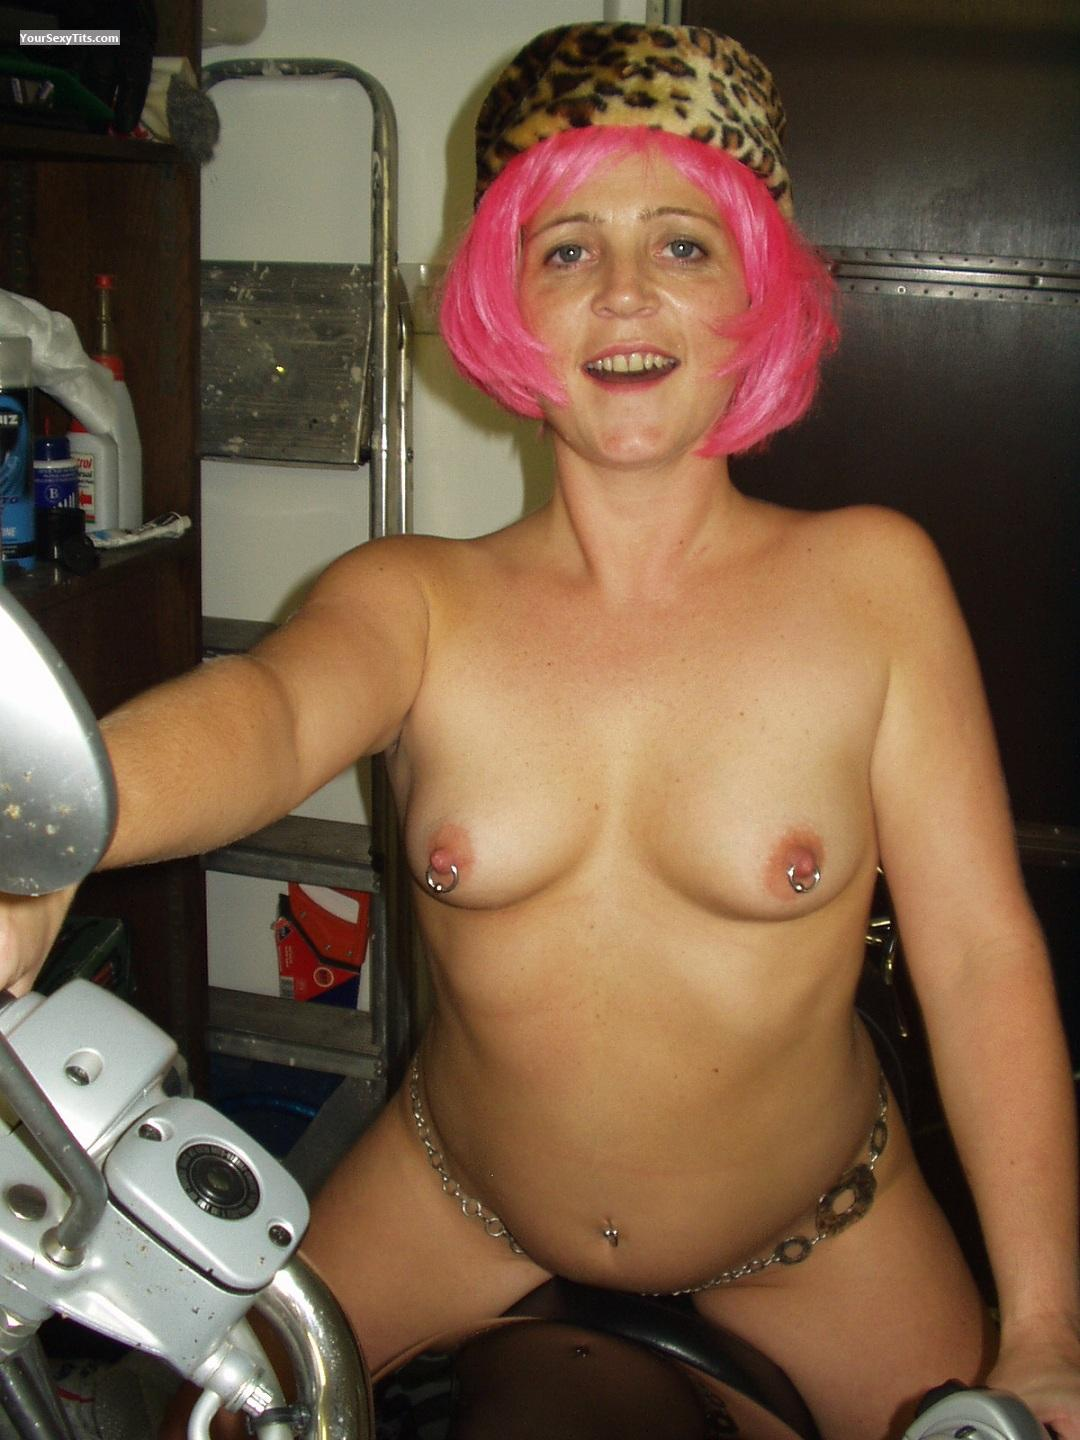 Tit Flash: Small Tits - Topless Pagan Pixie from United KingdomPierced Nipples